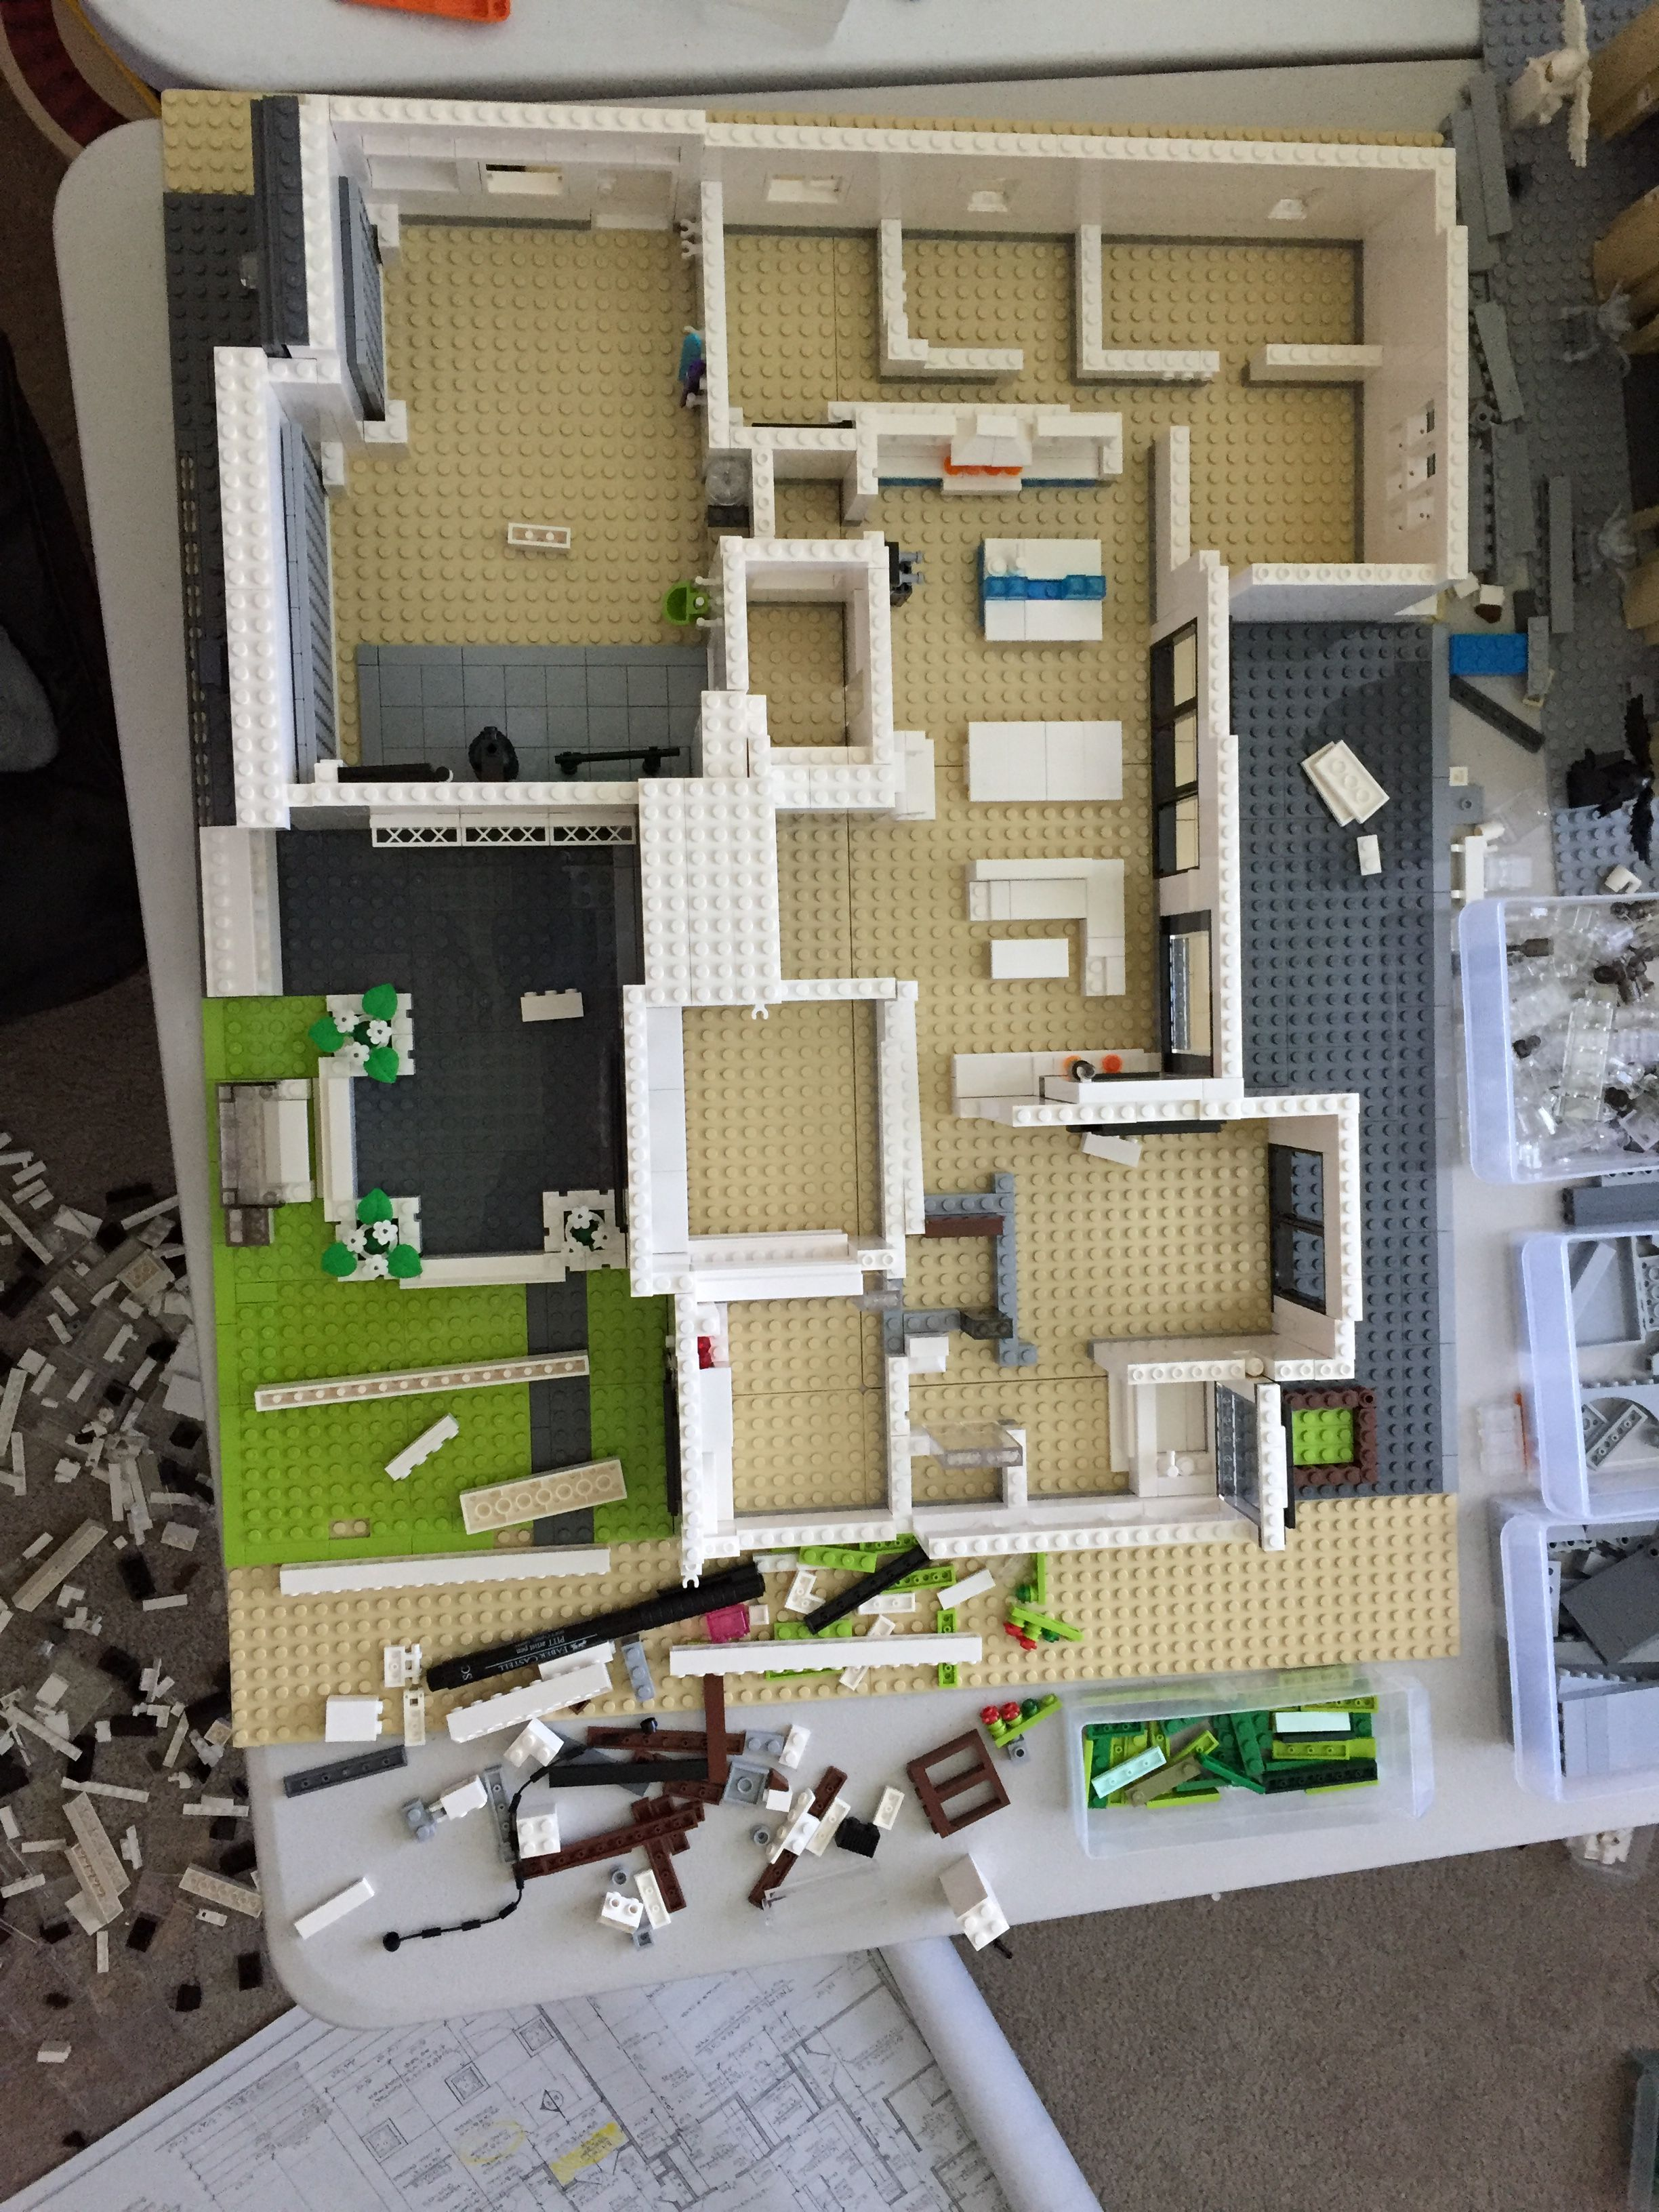 Building my floor plan using Lego in 2019 | House plans ... on diy plans, draw your own deck plans, wedding plans, reading plans, travel plans, summer plans, food plans, my own house, dream home plans, my house design, my house blueprint, make your own plans, my house management, my house projects, office plans, my house books, my modern house, christmas plans, my house goals, design plans,